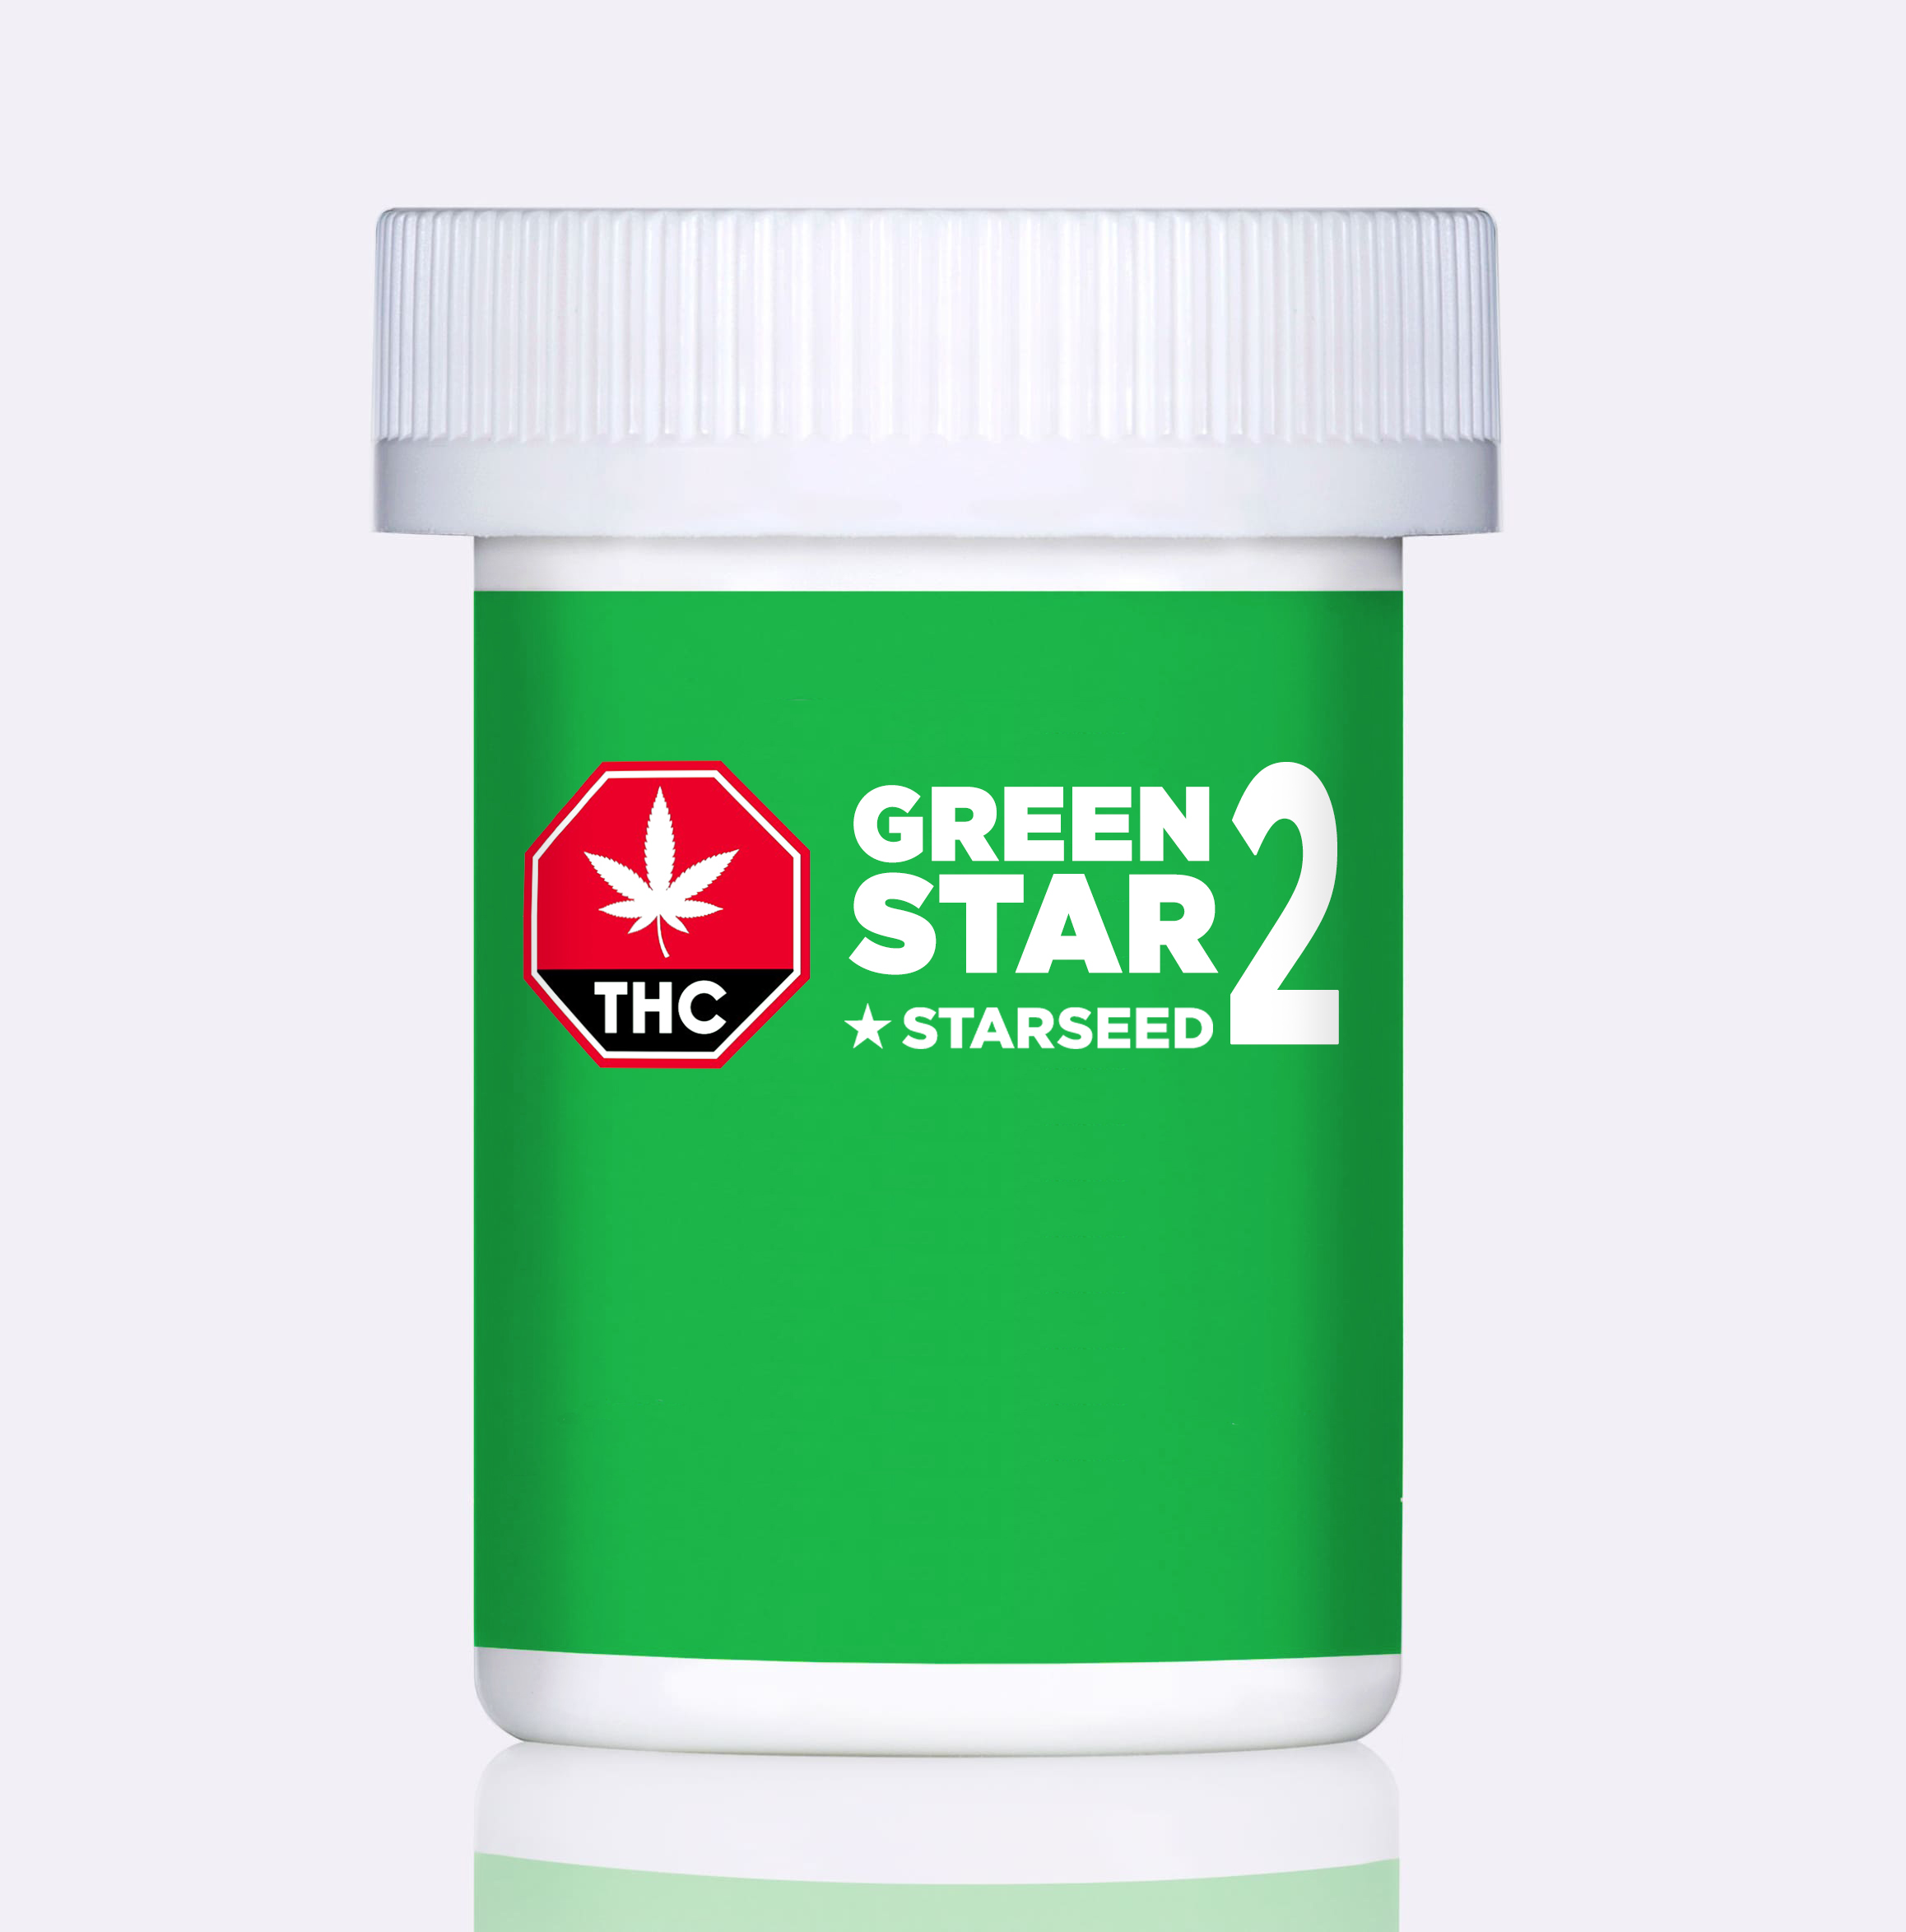 Starseed Green Star 2 - 5g